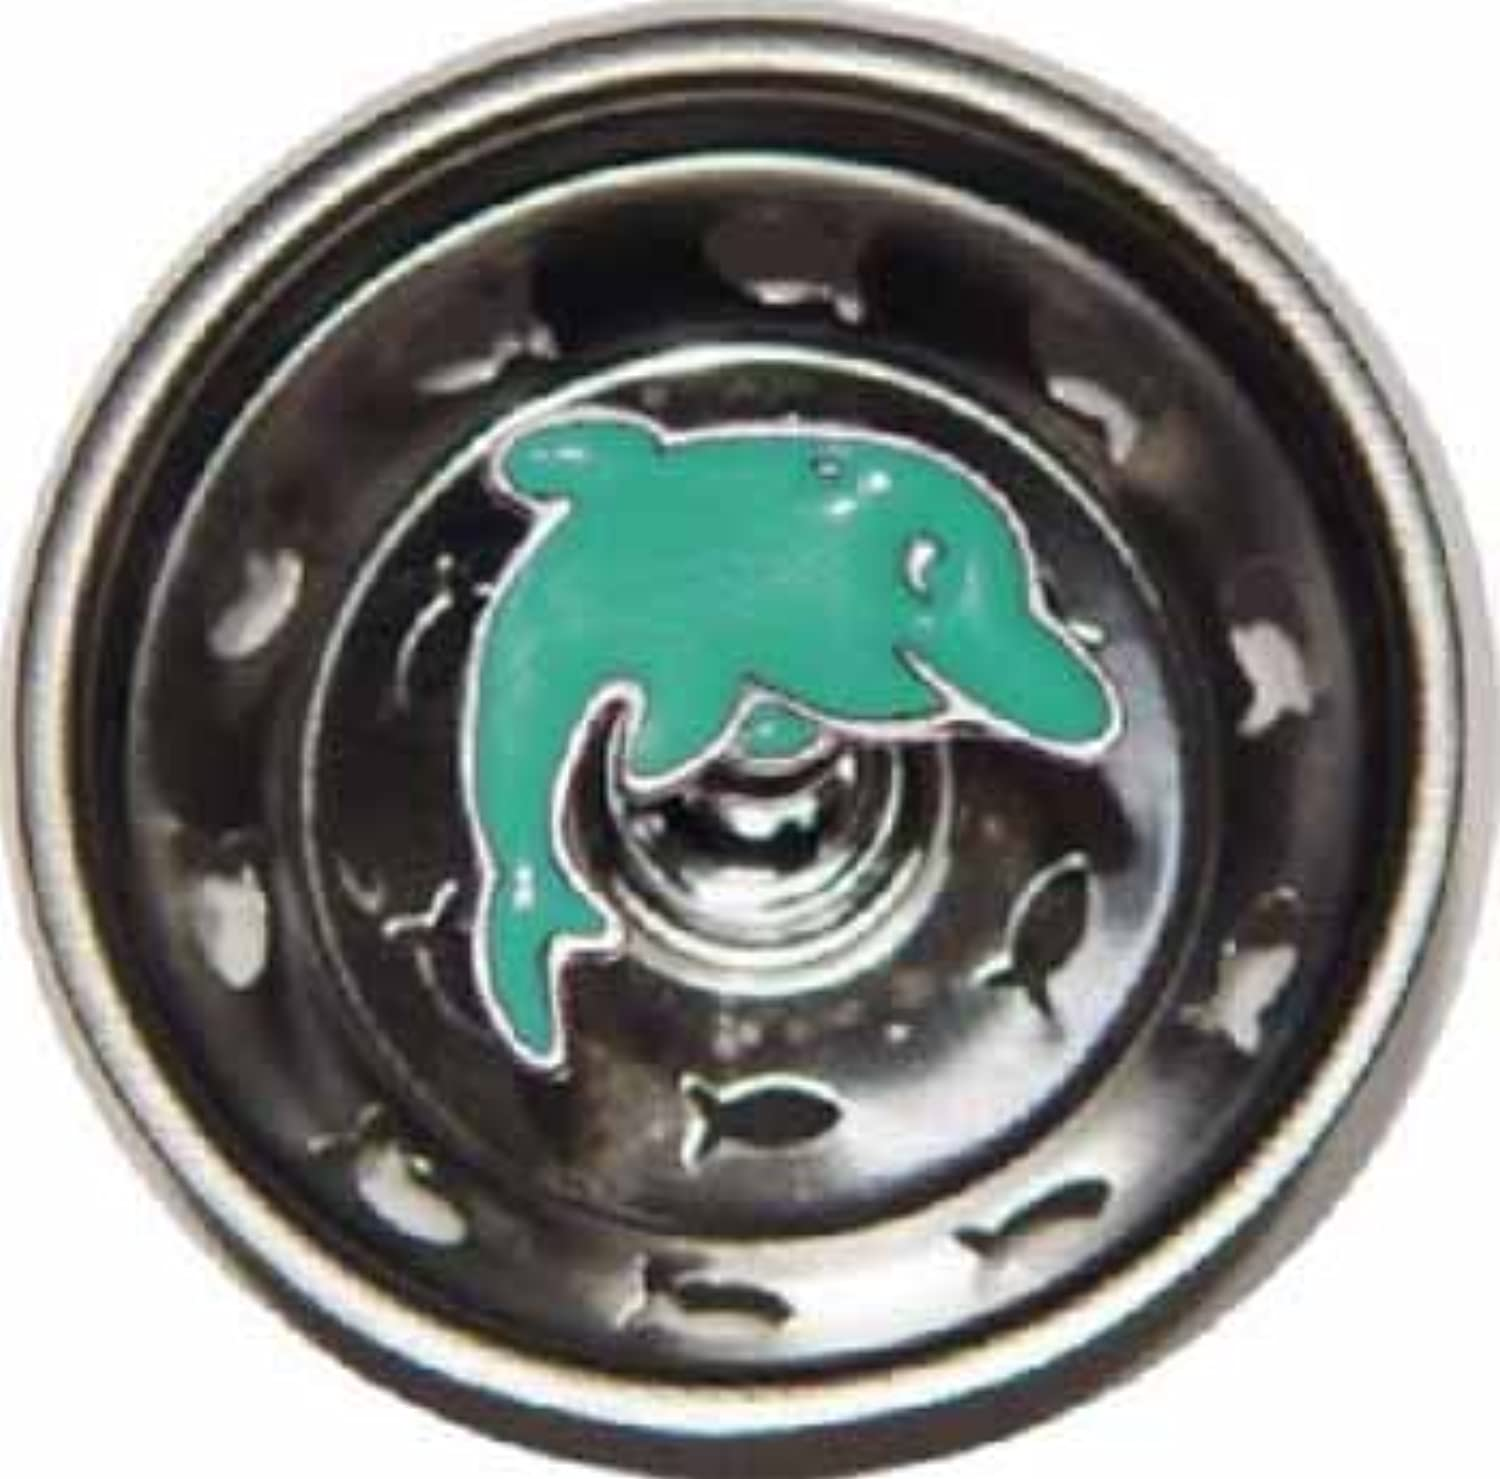 Dolphin Ocean Sink Strainer Drain Kitchen Decor